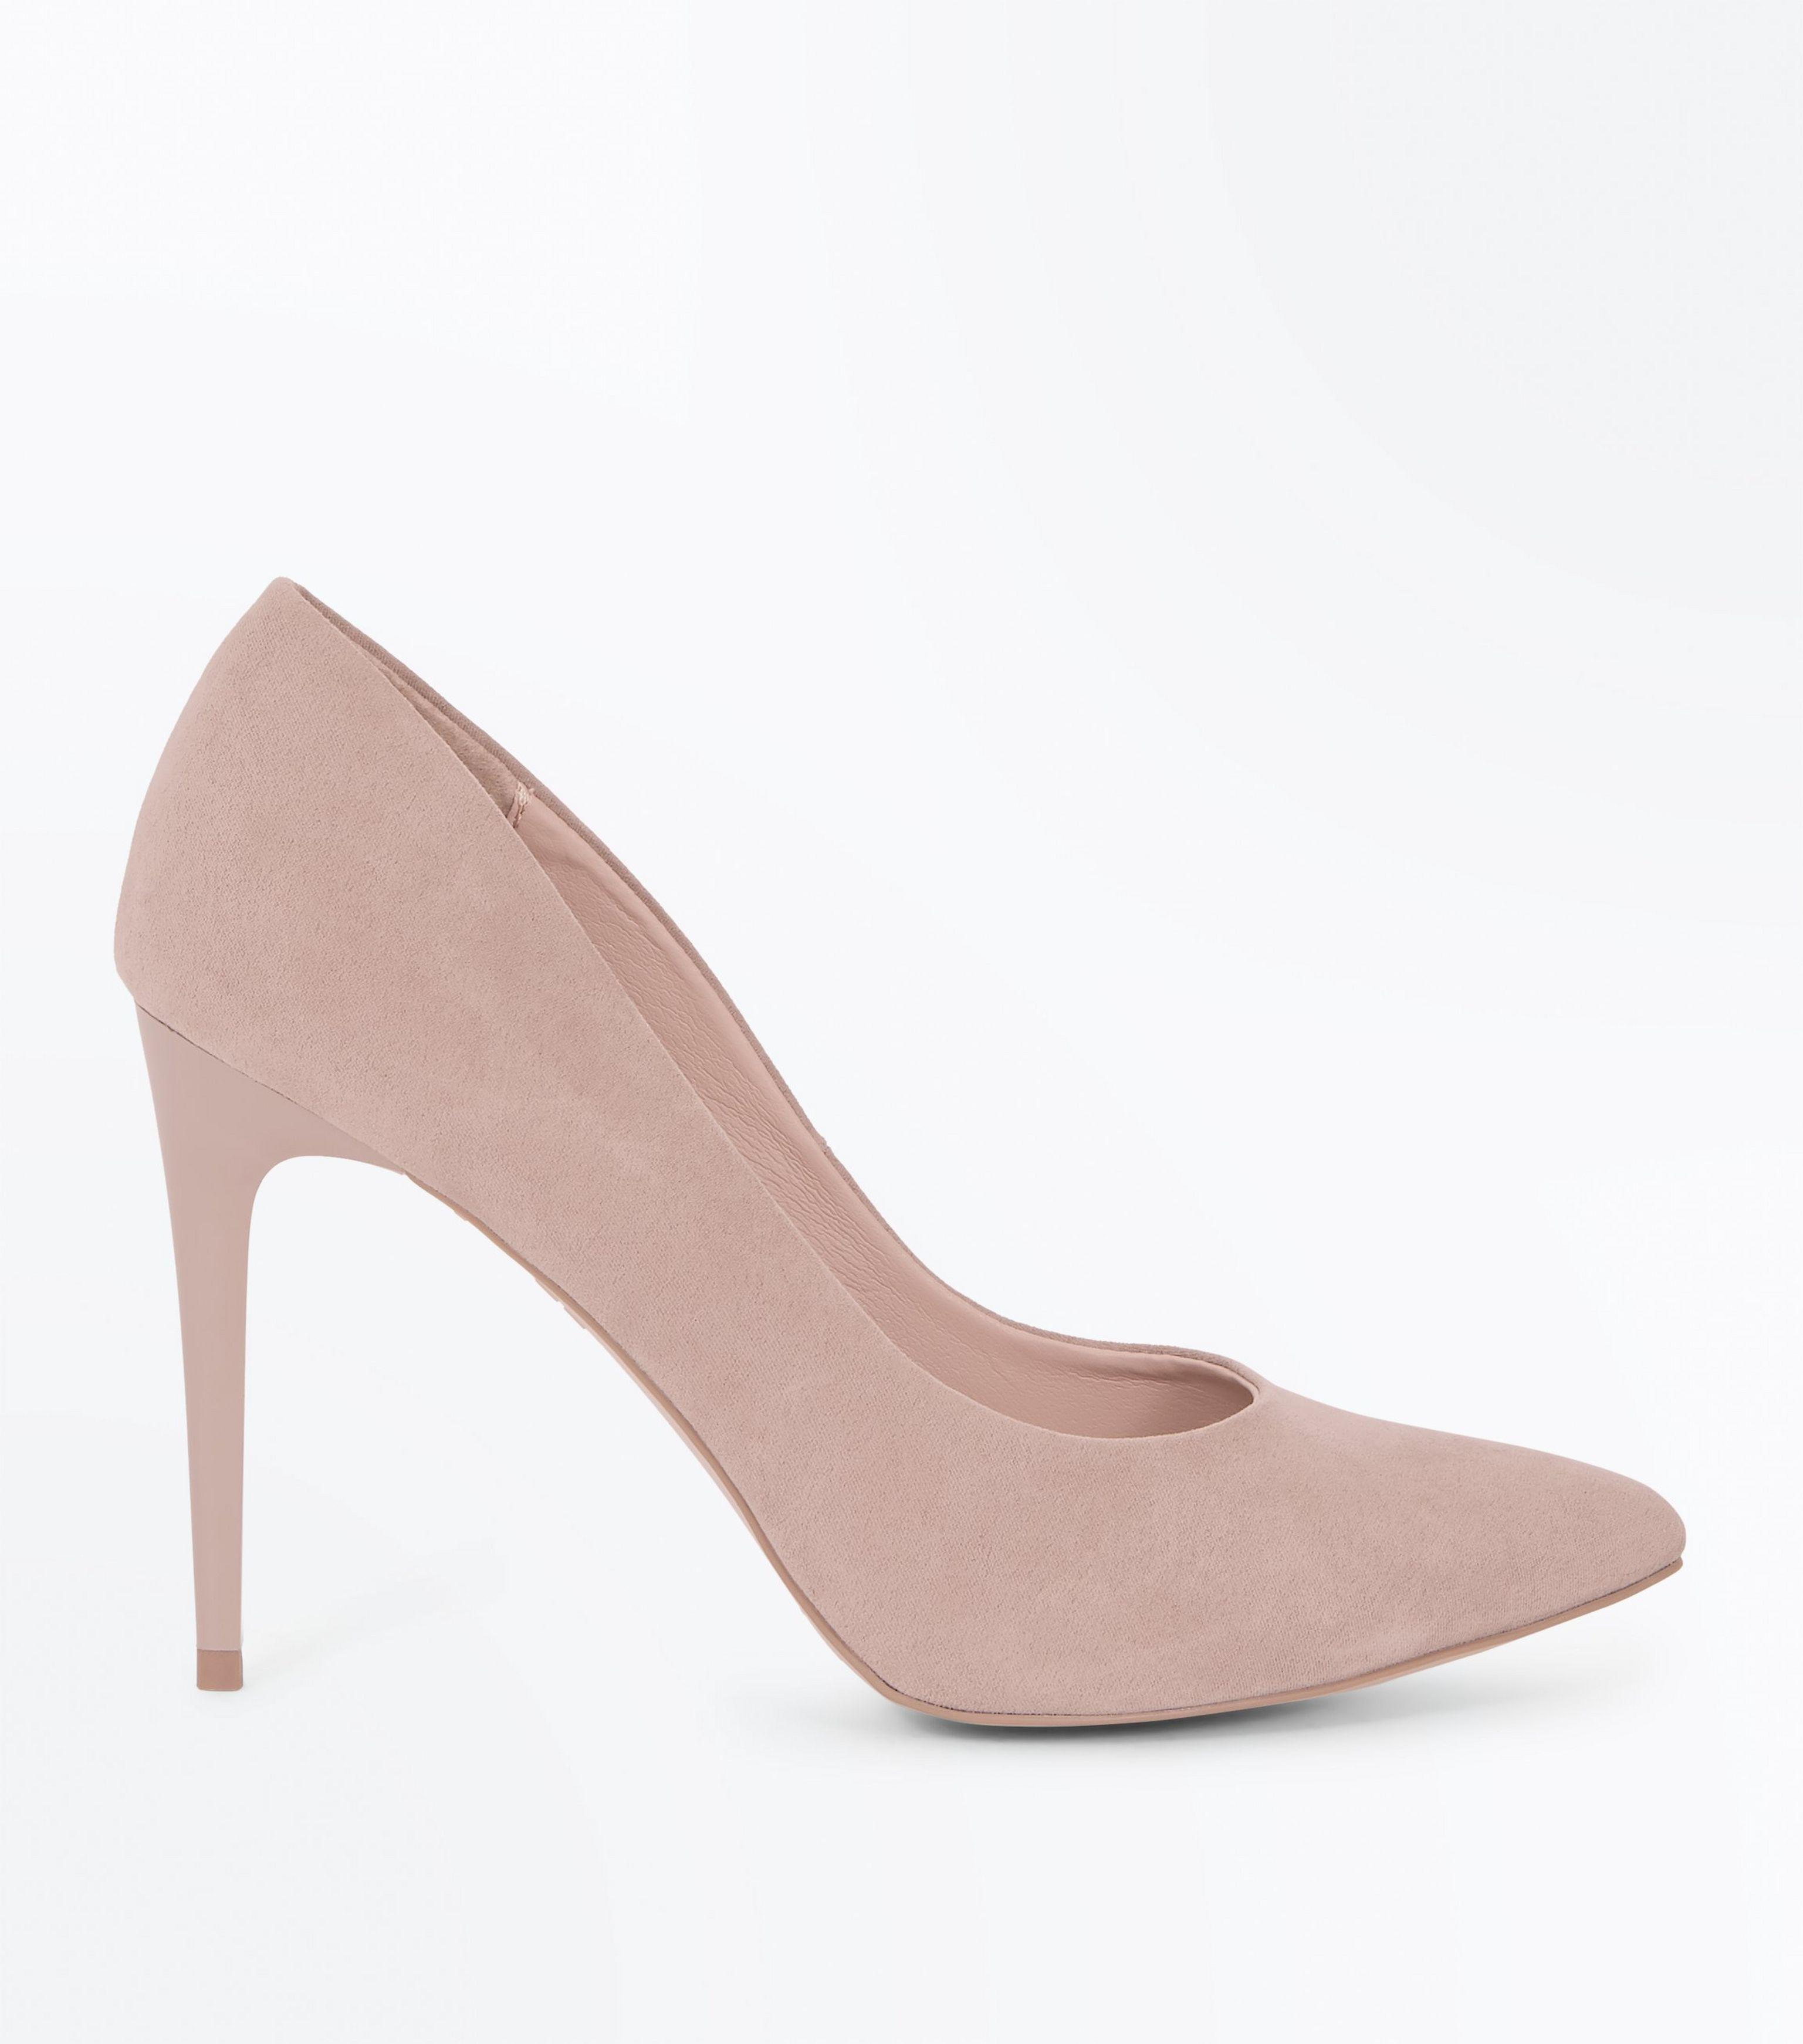 Nude 'Sarritah' stiletto heel court shoes cheap sale in China latest collections cheap price GmMzJ7SE